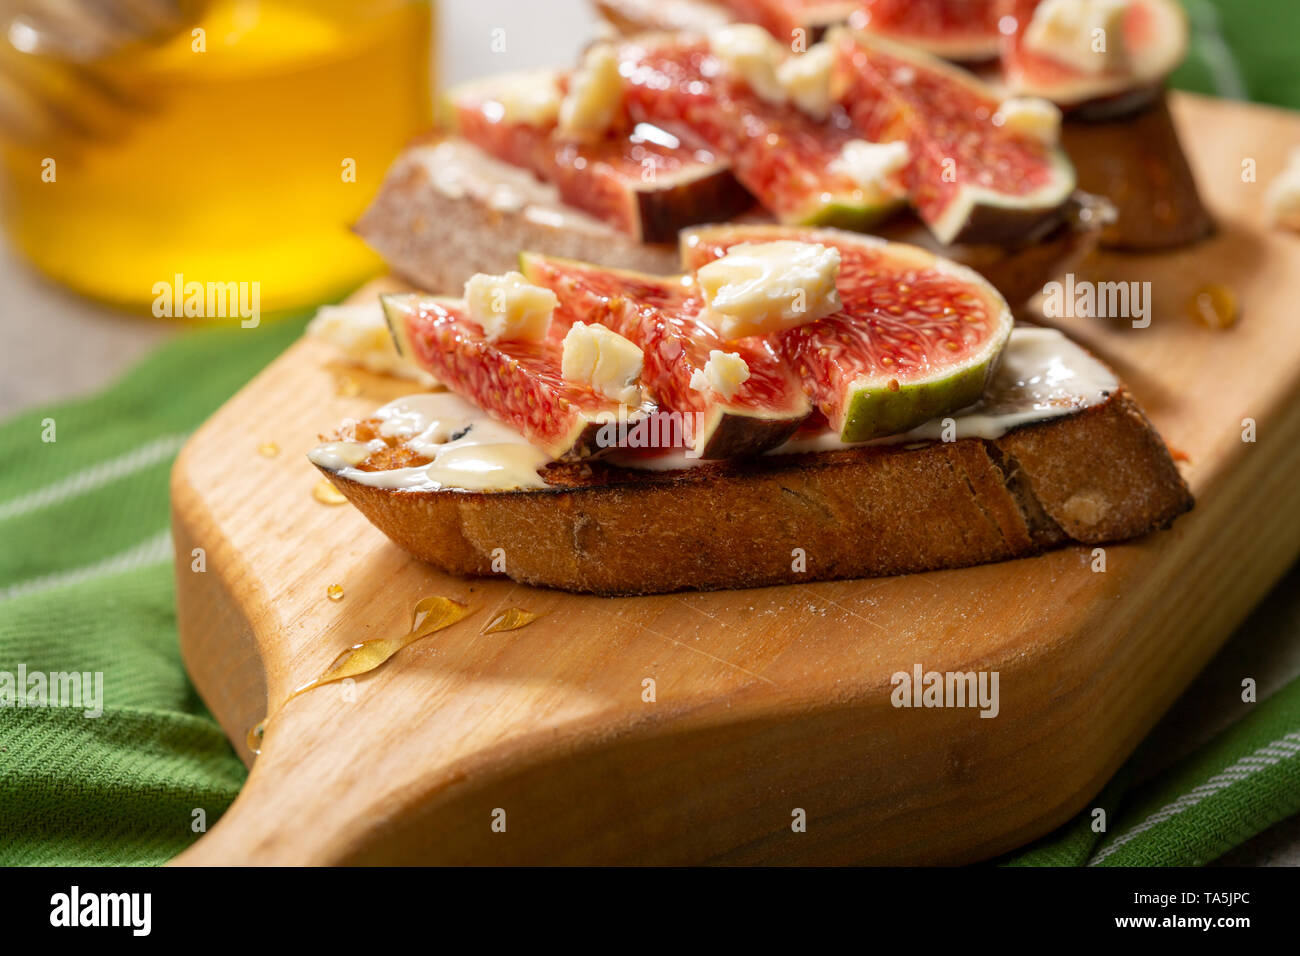 Sweet bruschetta with chese and figs - Stock Image